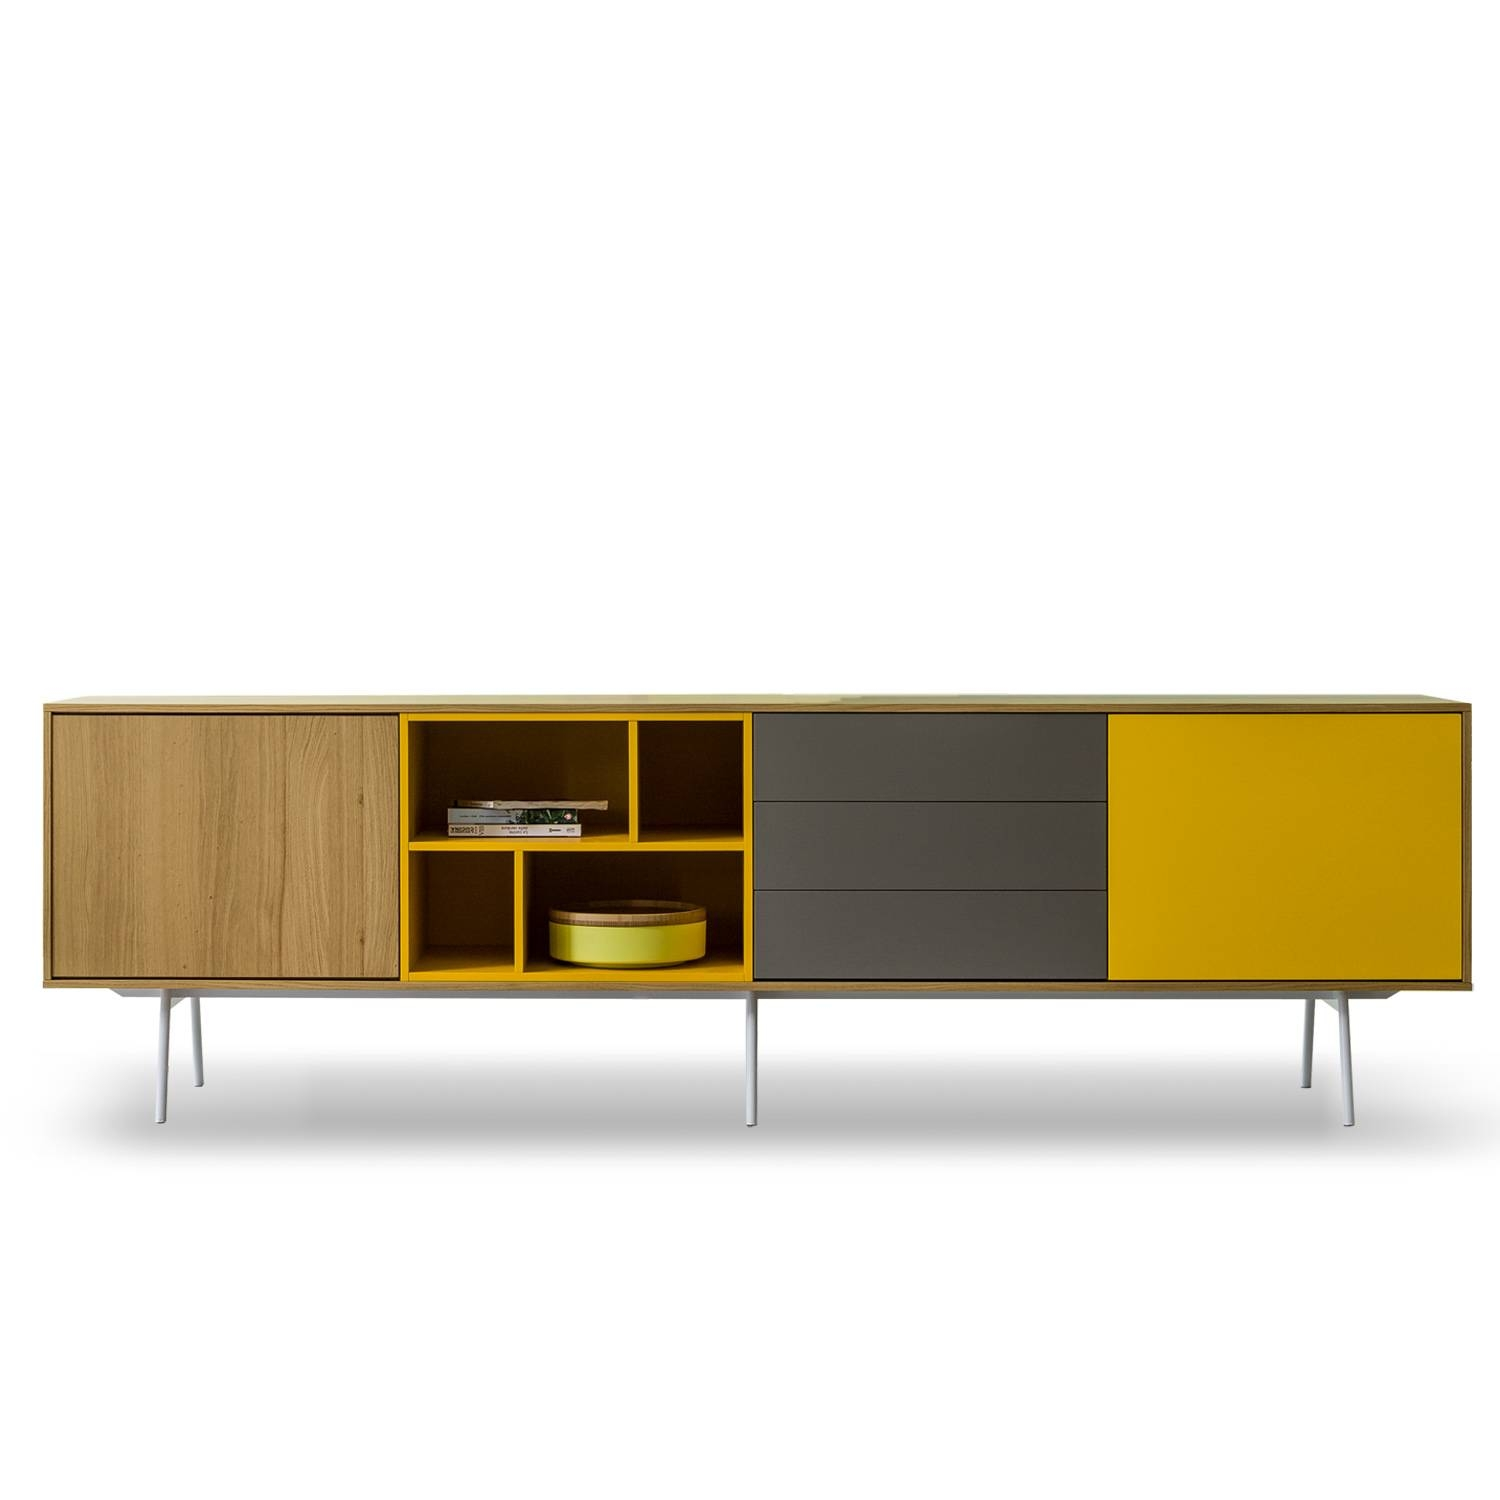 Modern Sideboard | Prince Furniture Inside Modern Sideboard Furniture (View 7 of 30)